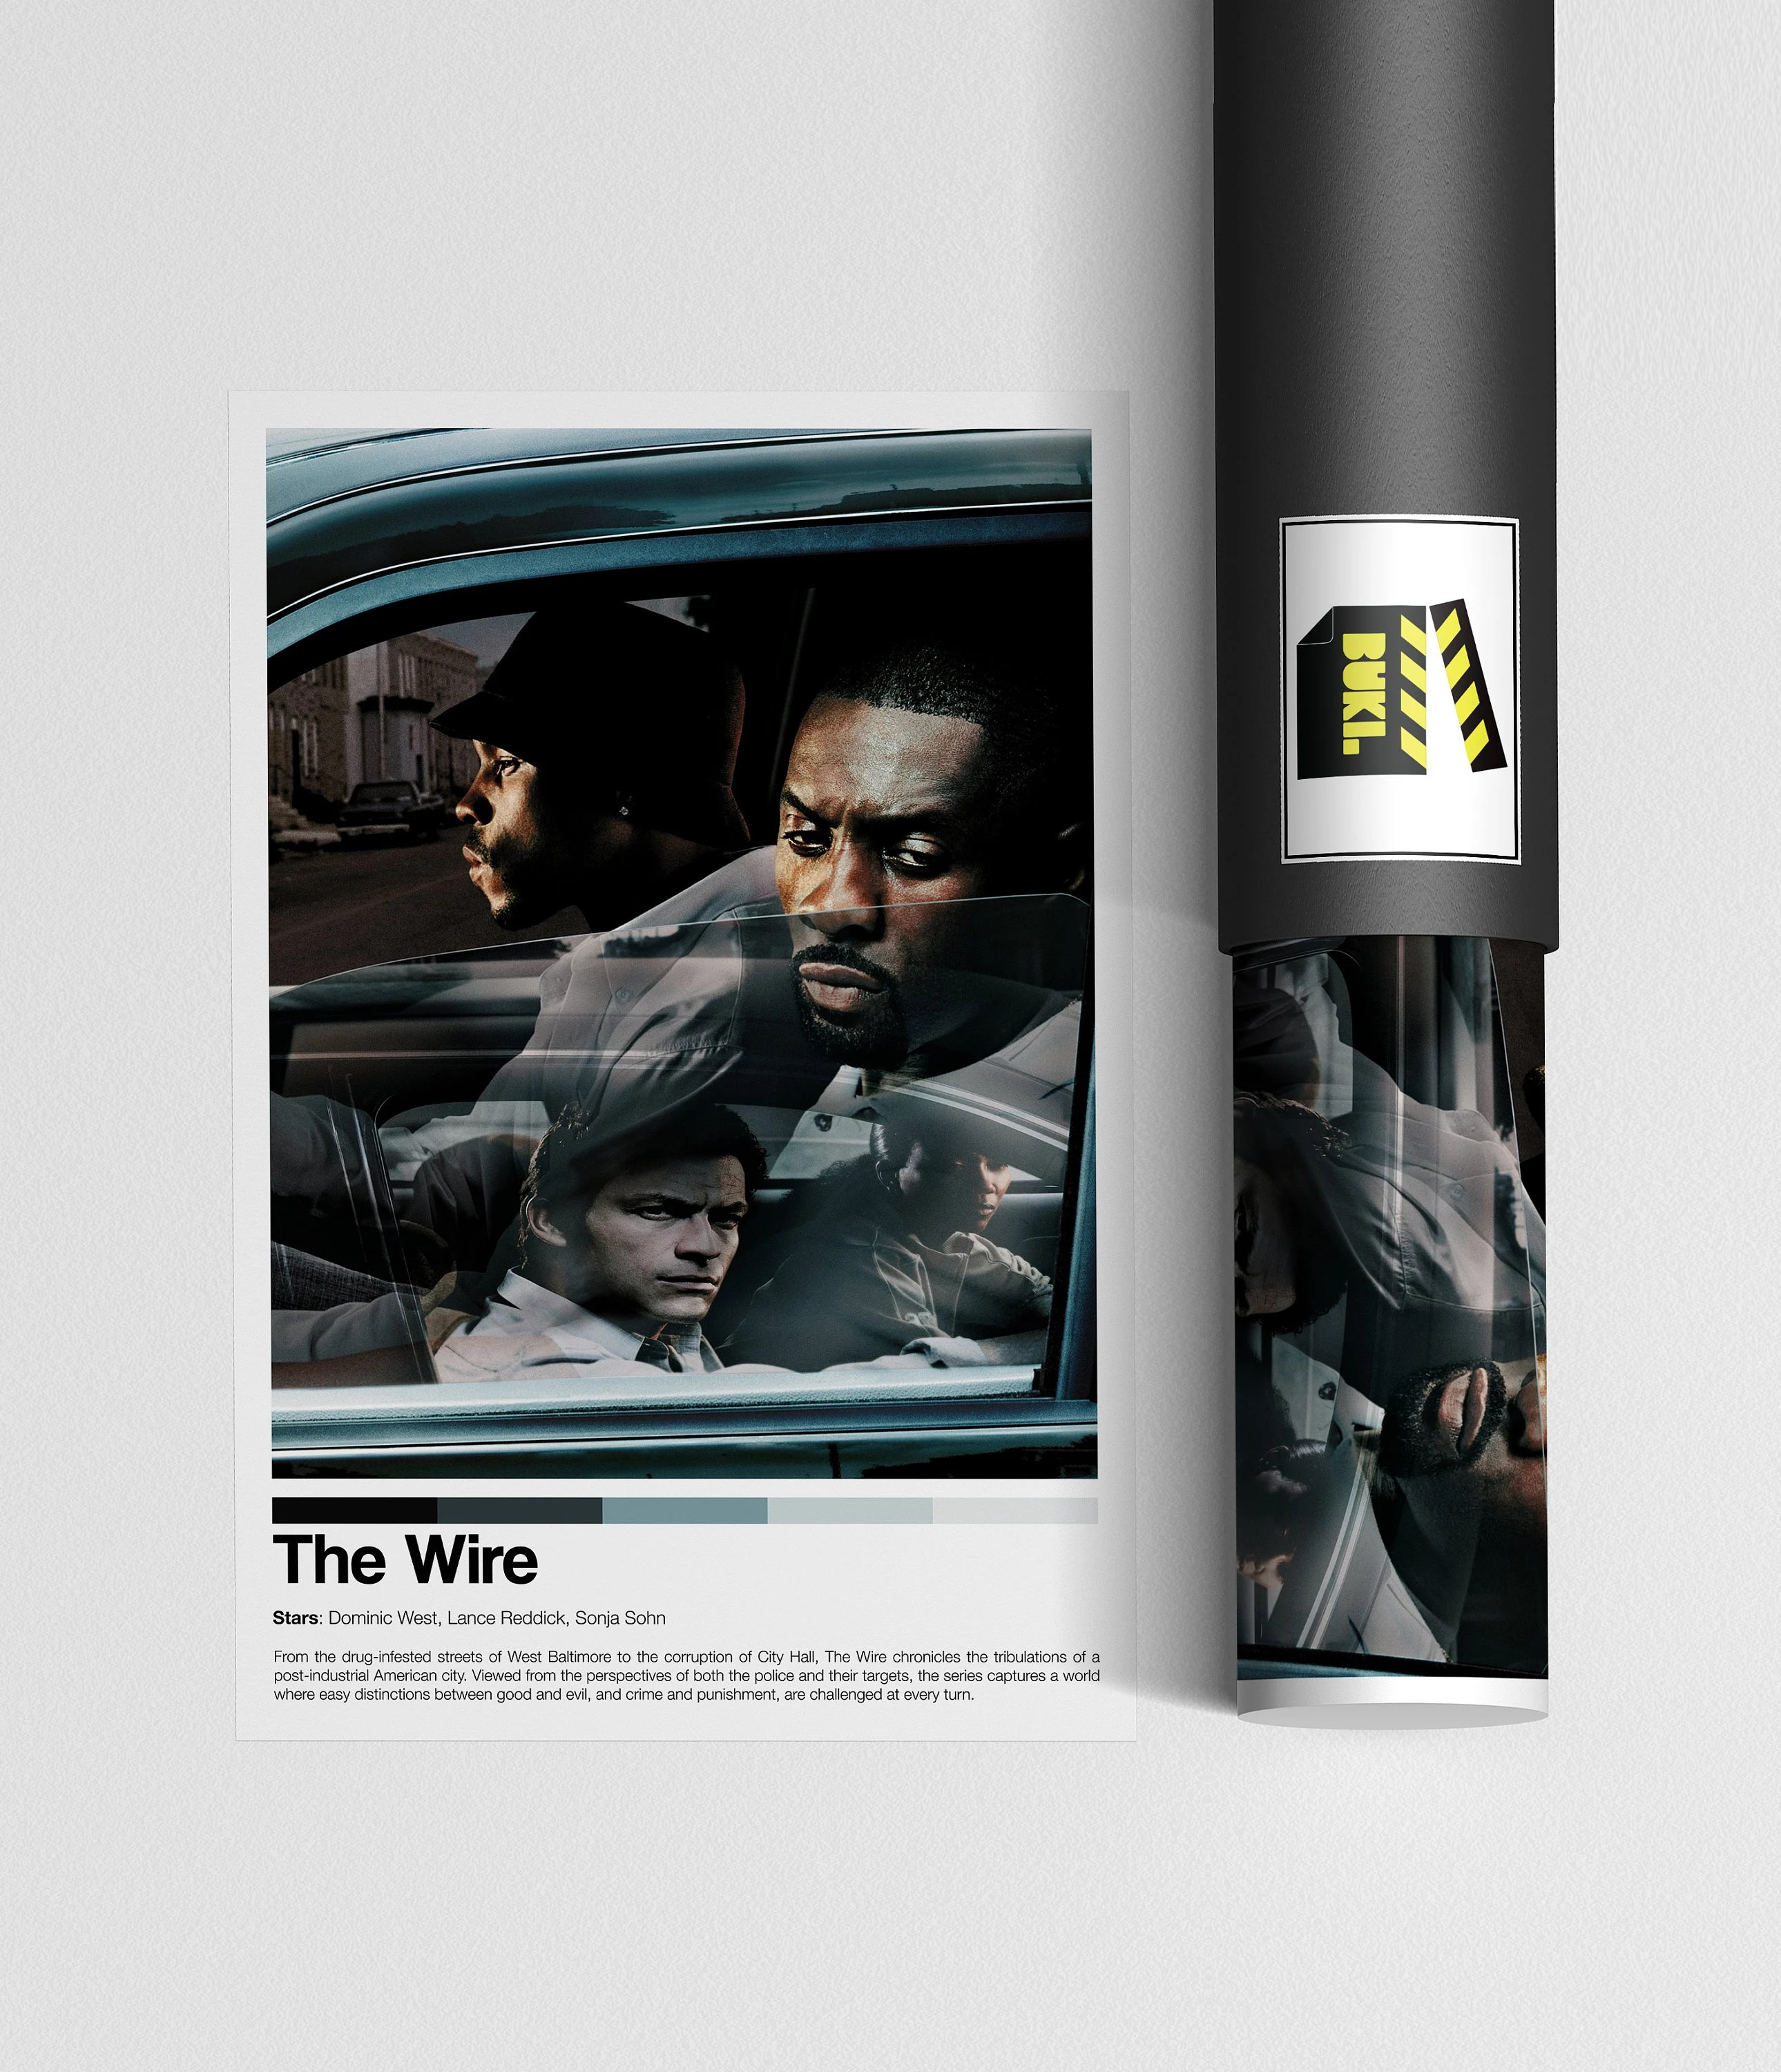 the wire poster etsy